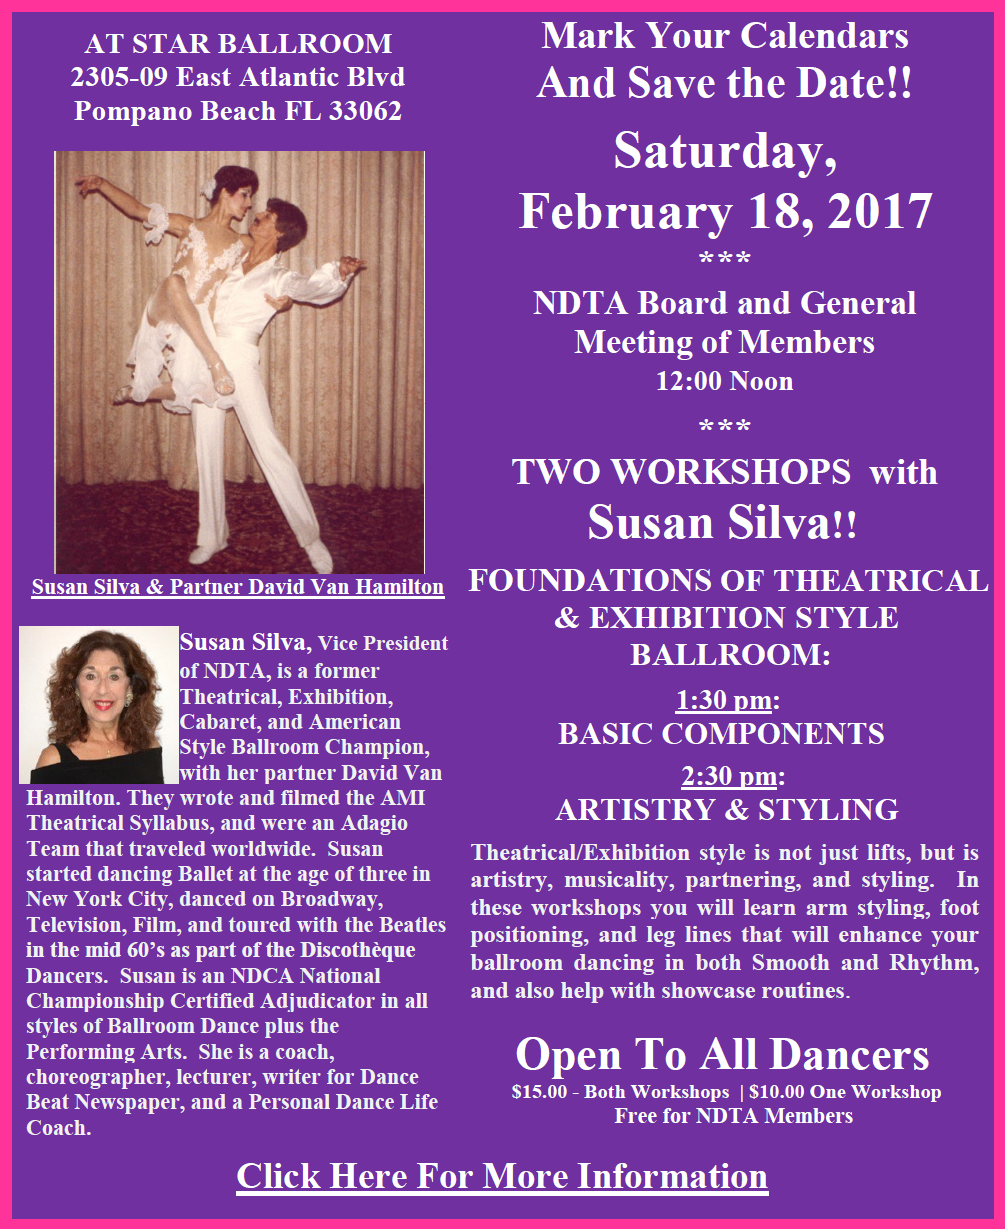 February 18, 2017 - NDTA Meeting & Two Workshops by Susan Silva